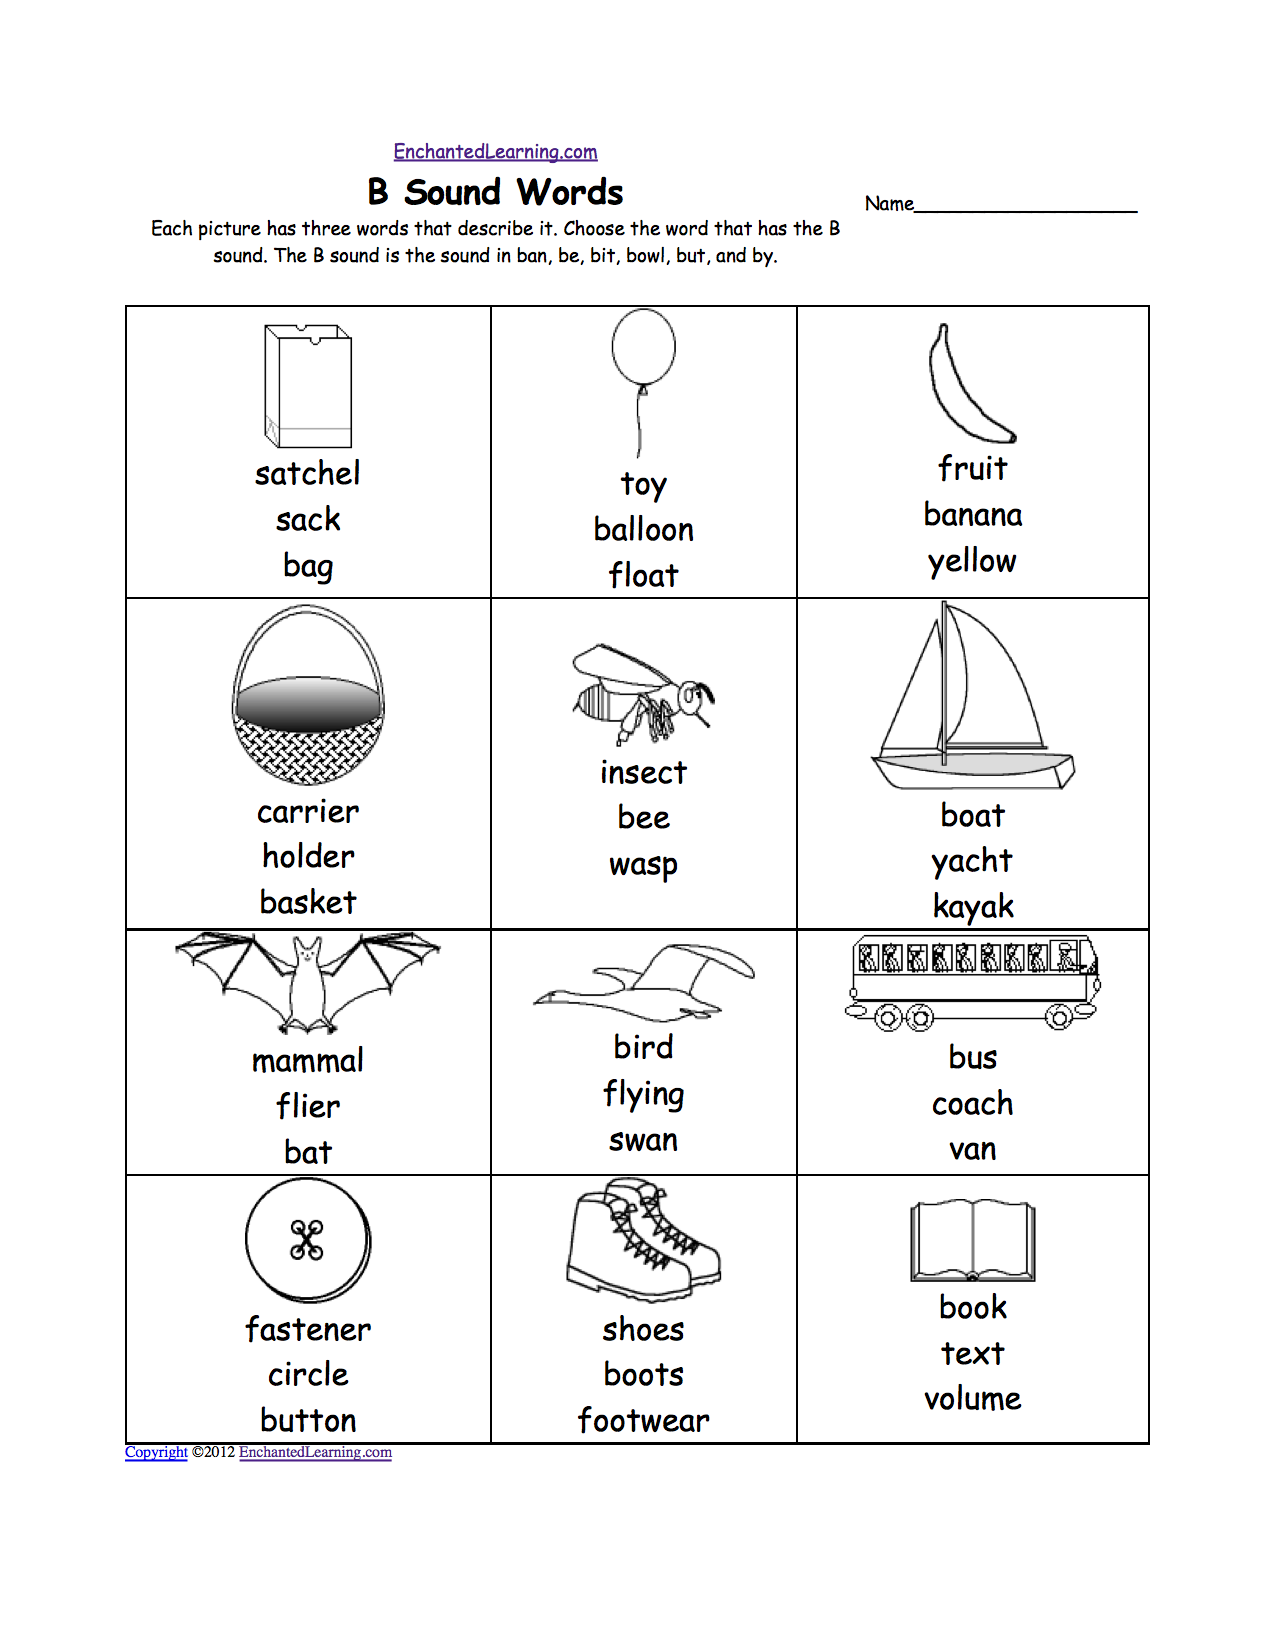 Weirdmailus  Marvellous Phonics Worksheets Multiple Choice Worksheets To Print  With Glamorous Quotbquot Sound Phonics Worksheet Multiple Choice Each Picture Has Three Words That Describe It Choose The Word That Has A Quotbquot Sound The Quotbquot Sound Is The Sound  With Comely Th Grade Algebraic Expressions Worksheets Also Rhyming Worksheets Preschool In Addition Bill Nye Worksheet And Three Digit Addition And Subtraction Worksheets As Well As Number Bonds Worksheet Additionally Force Worksheets From Enchantedlearningcom With Weirdmailus  Glamorous Phonics Worksheets Multiple Choice Worksheets To Print  With Comely Quotbquot Sound Phonics Worksheet Multiple Choice Each Picture Has Three Words That Describe It Choose The Word That Has A Quotbquot Sound The Quotbquot Sound Is The Sound  And Marvellous Th Grade Algebraic Expressions Worksheets Also Rhyming Worksheets Preschool In Addition Bill Nye Worksheet From Enchantedlearningcom